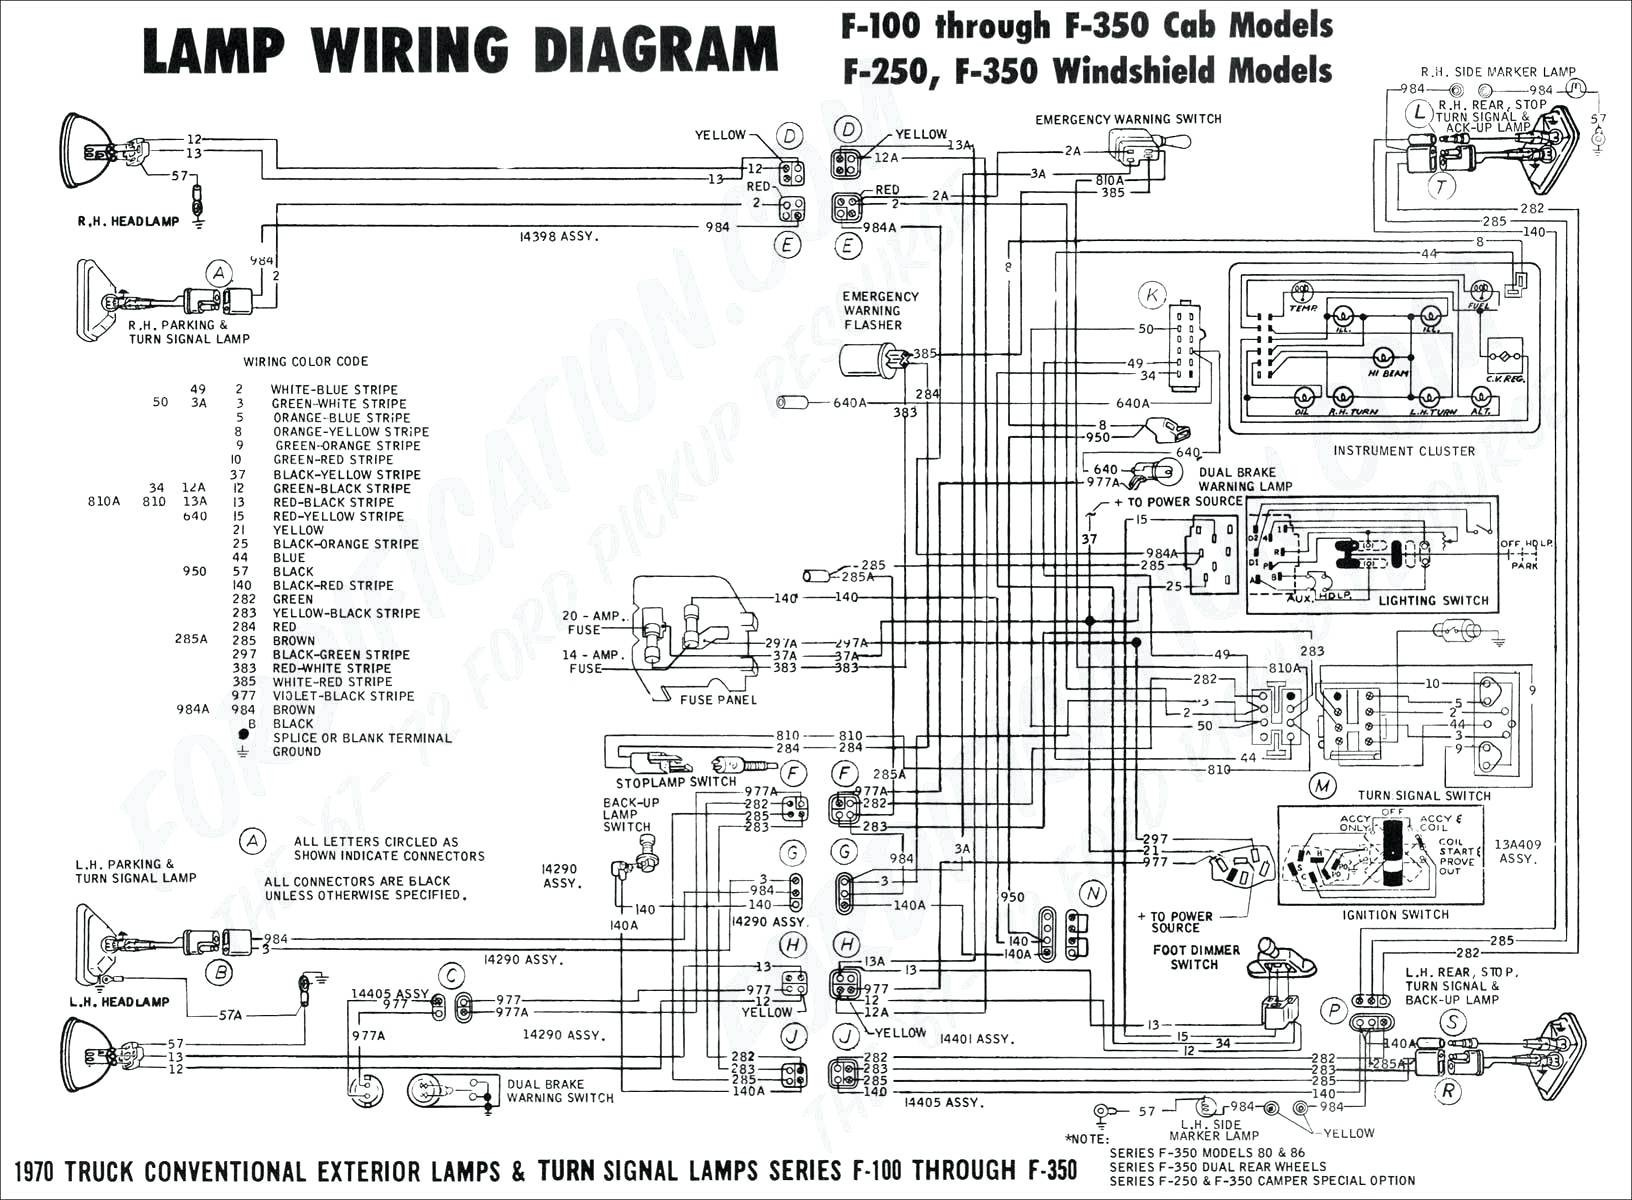 hight resolution of 2007 sterling truck wiring diagram ih 585 wiring diagram experts wiring diagram of 2007 sterling